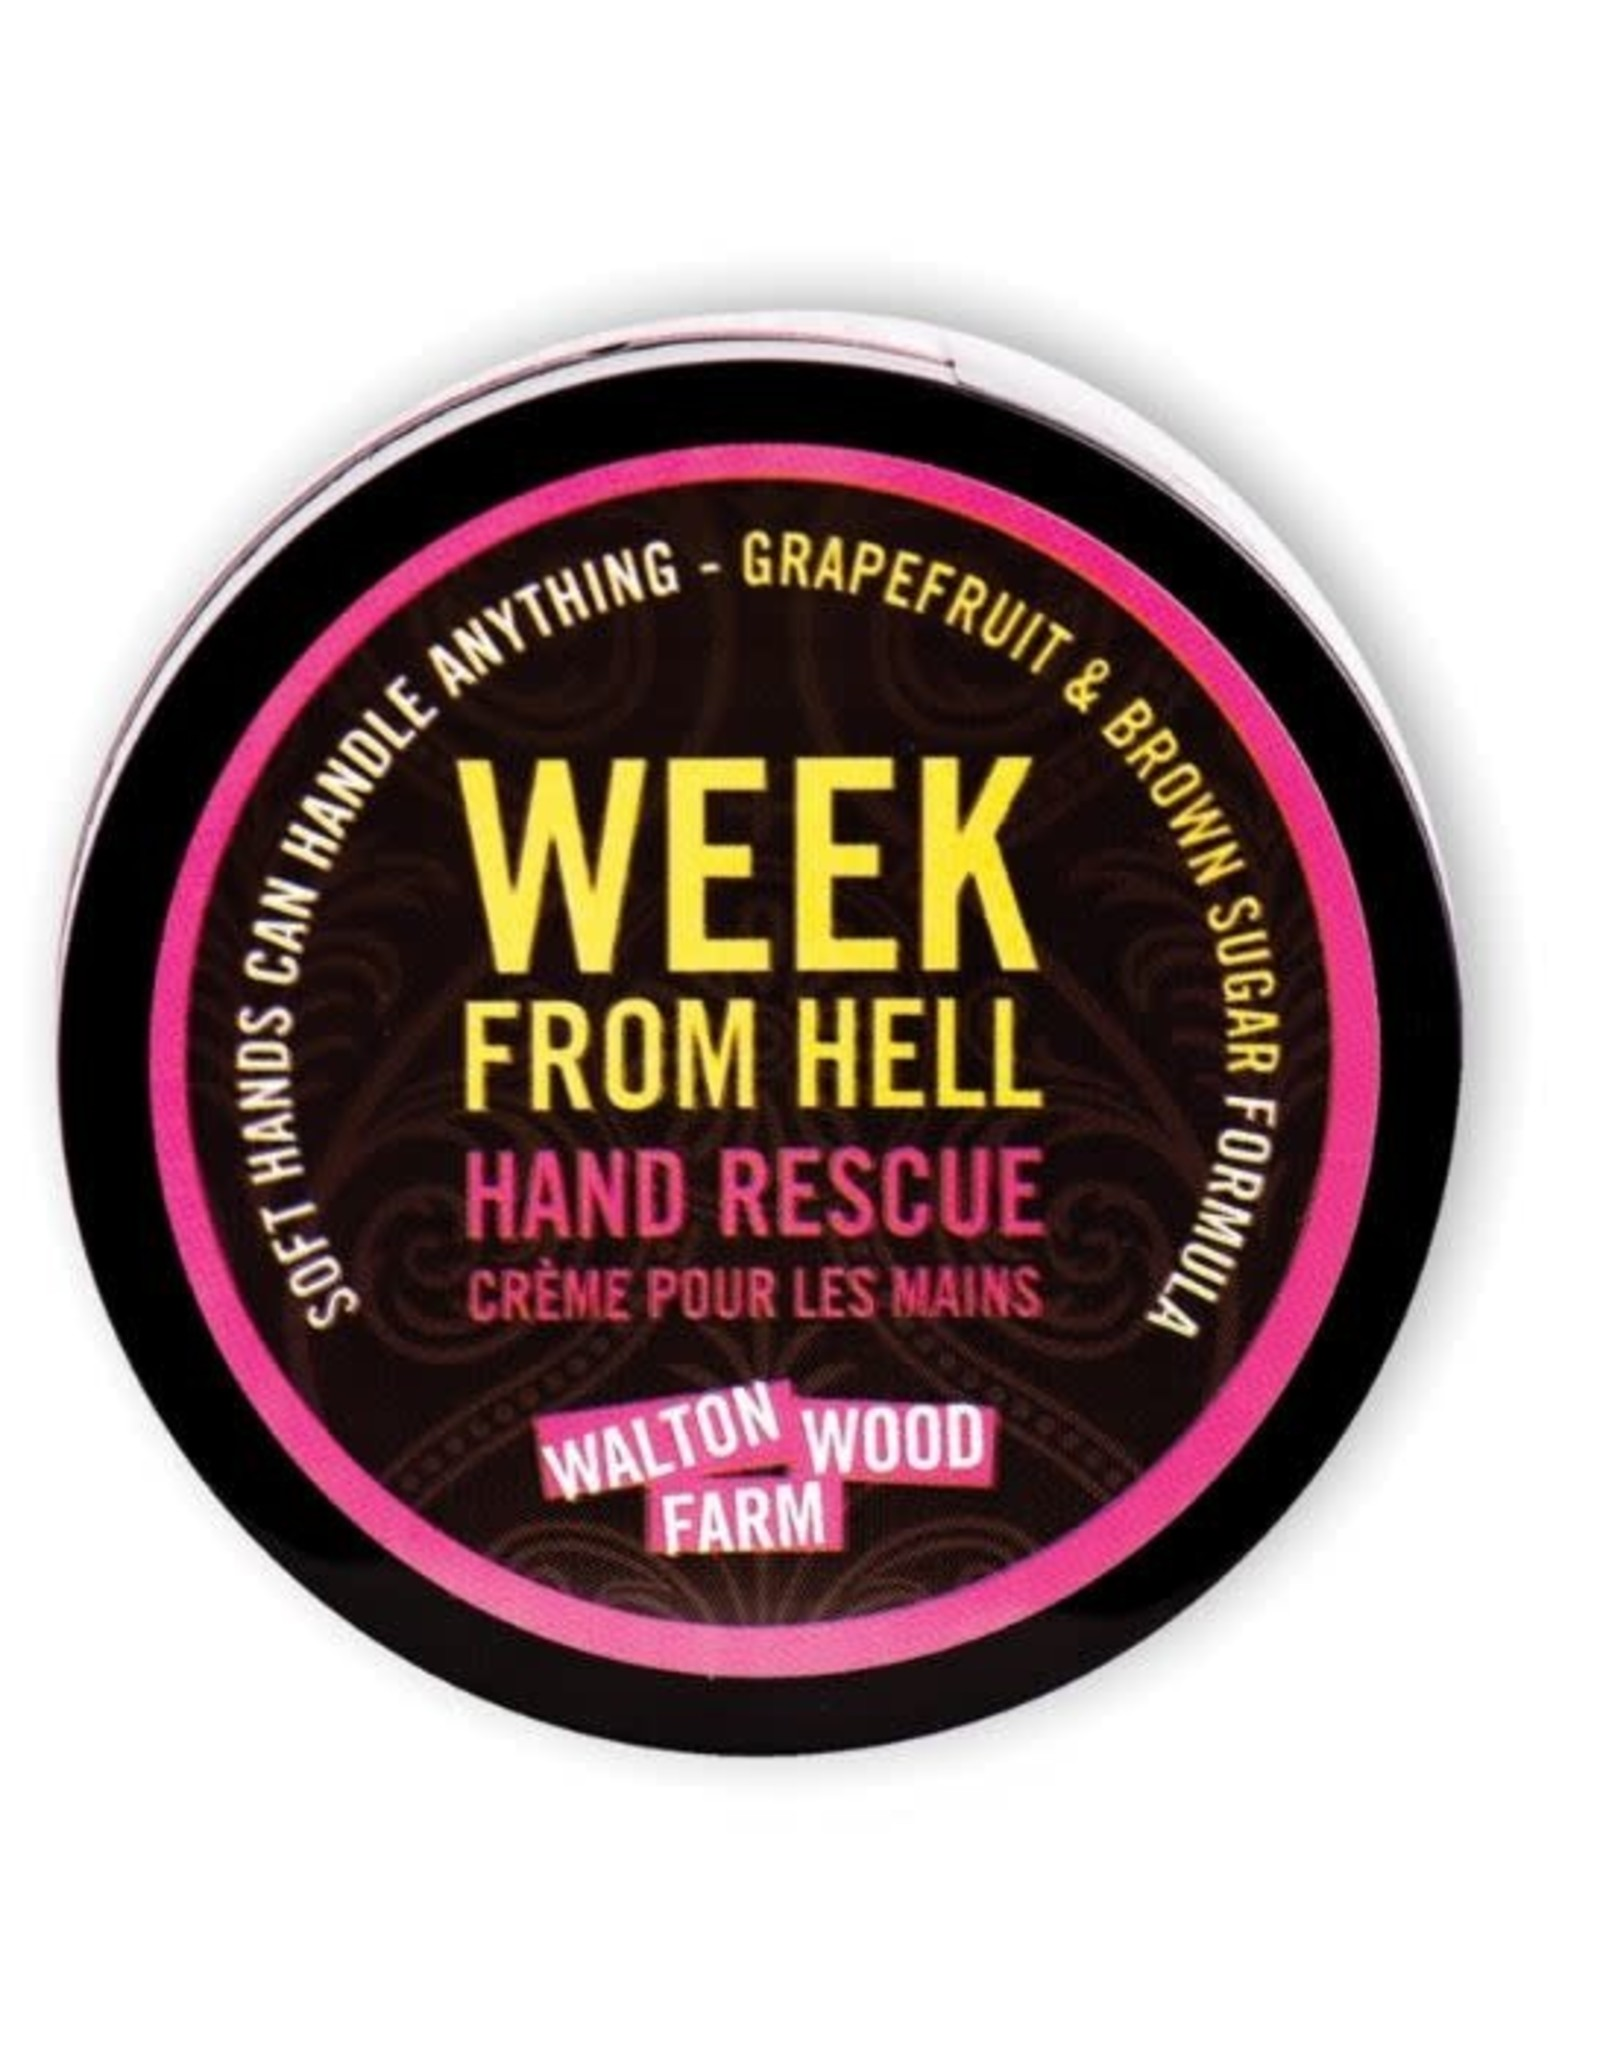 Walton Wood Farm Crème - Week From Hell